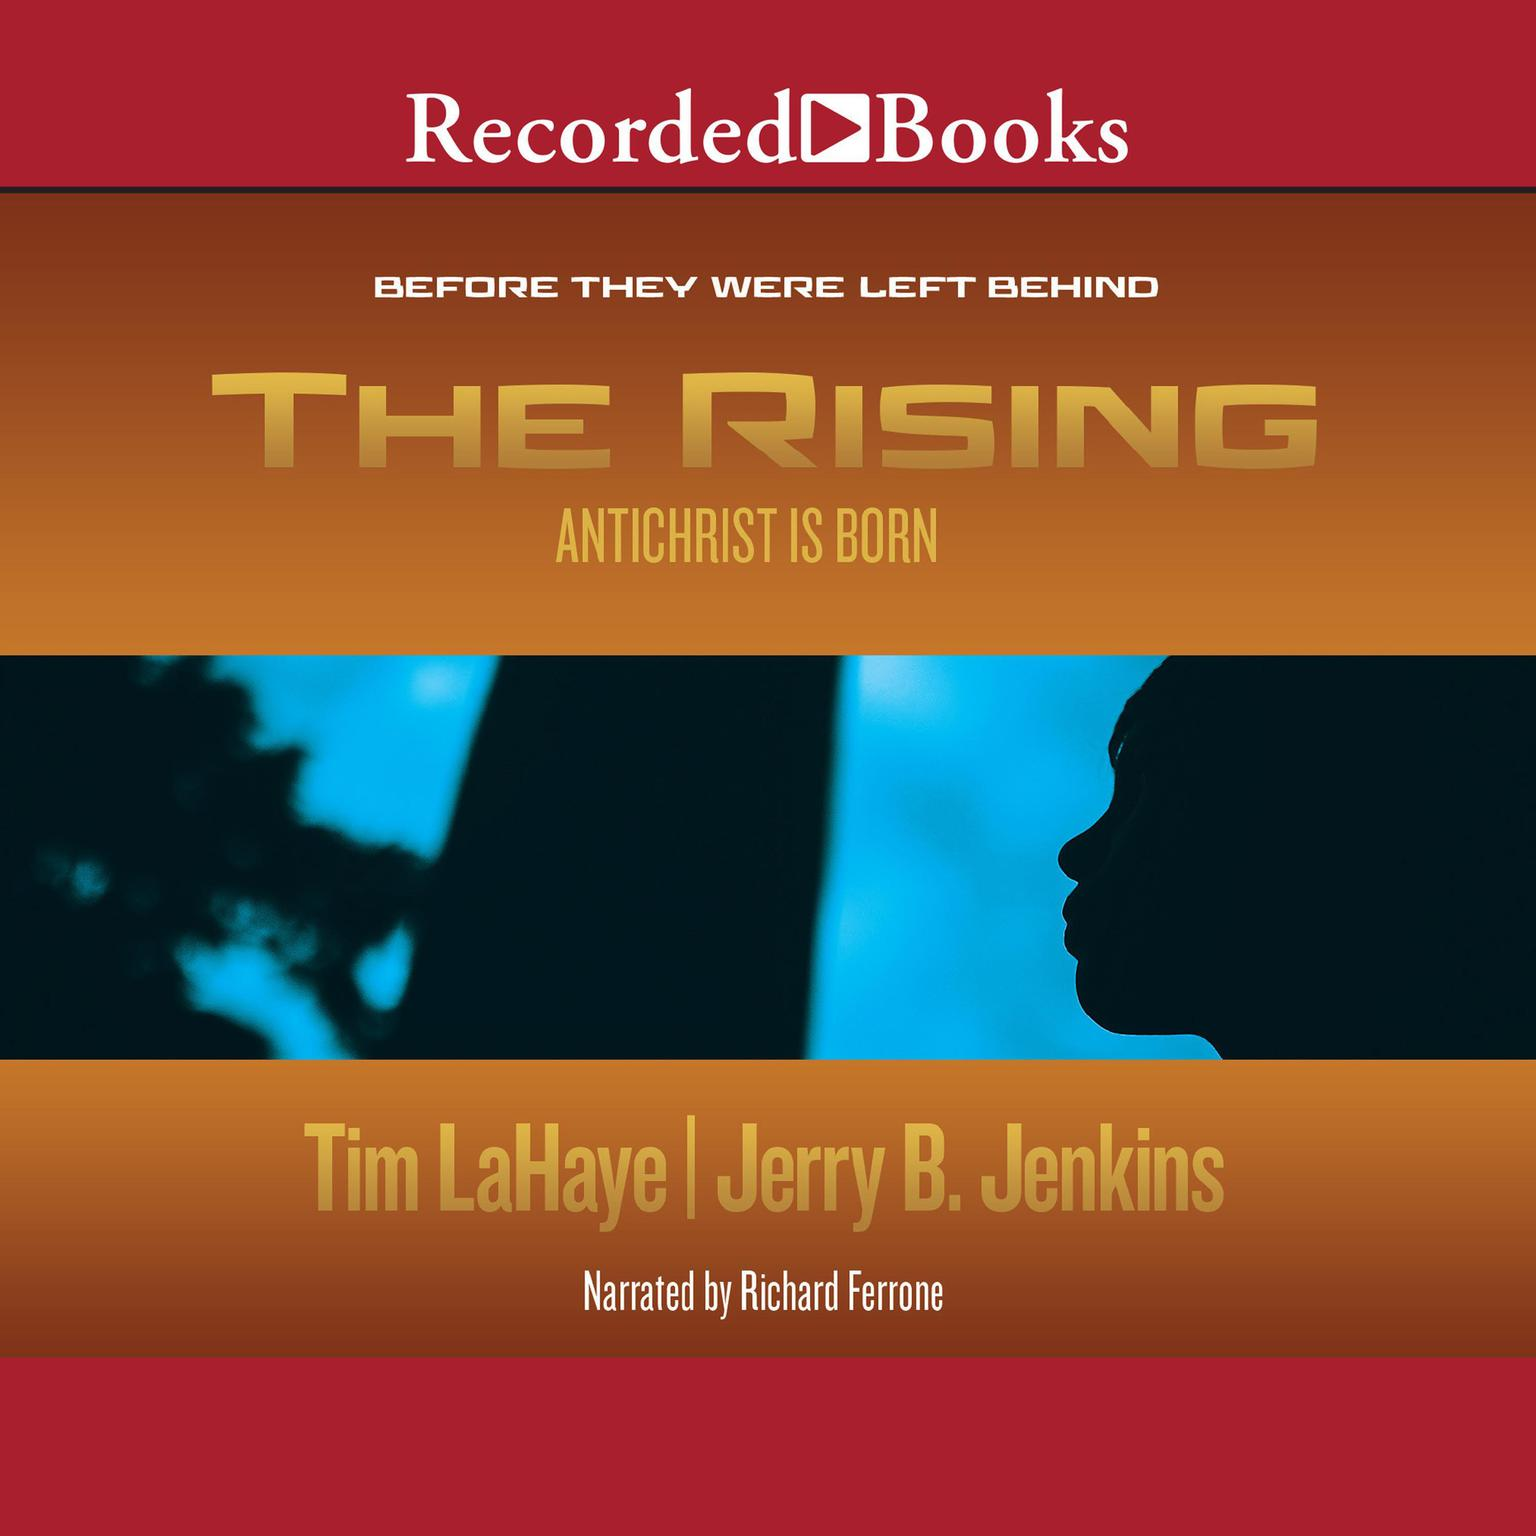 Printable The Rising: Antichrist is Born  Audiobook Cover Art